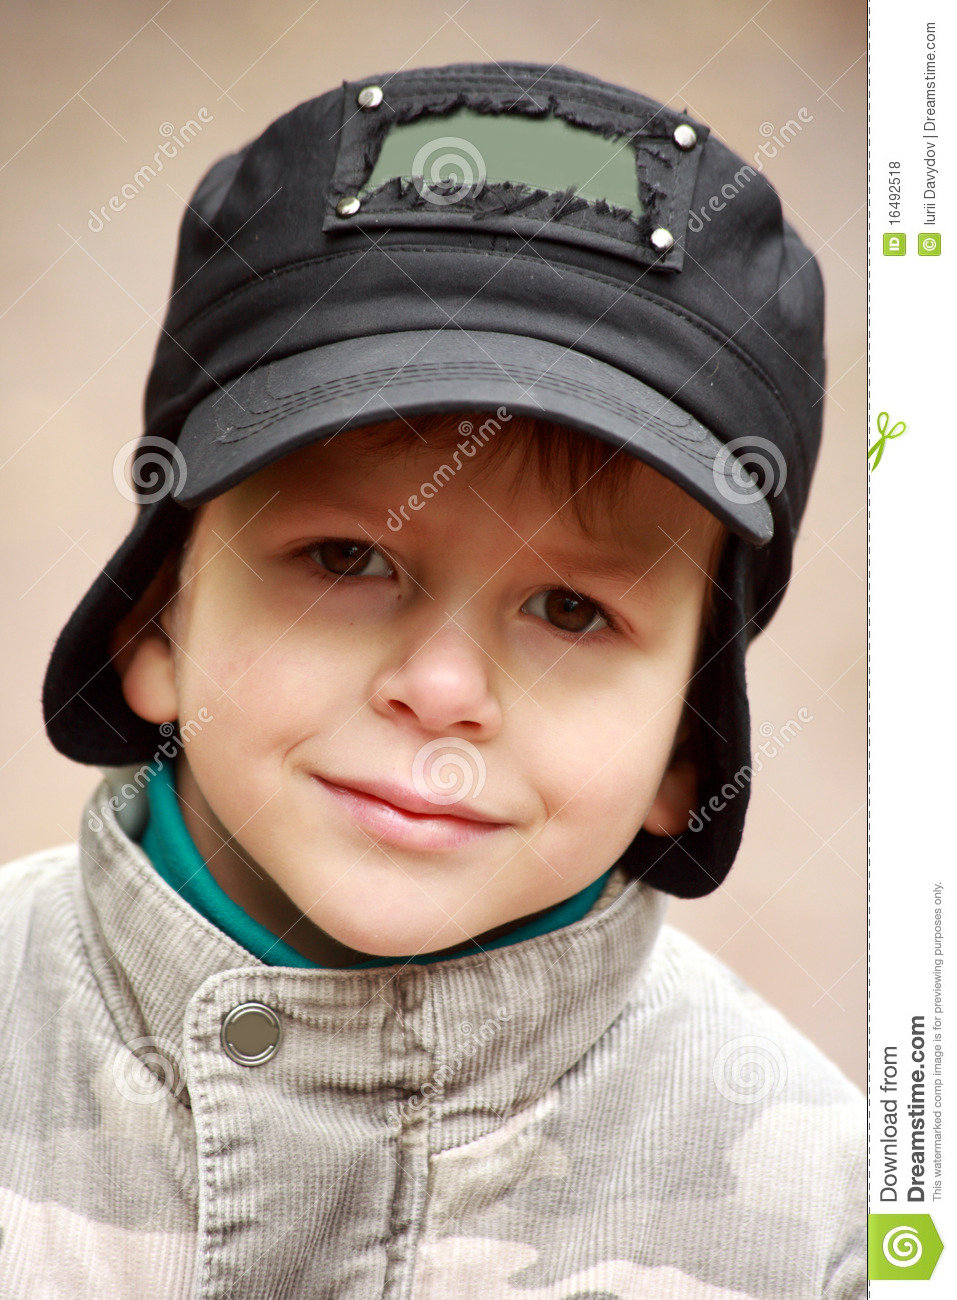 41545536ab2 Portrait Of A Smiling Little Boy In Hat Stock Photo - Image of ...